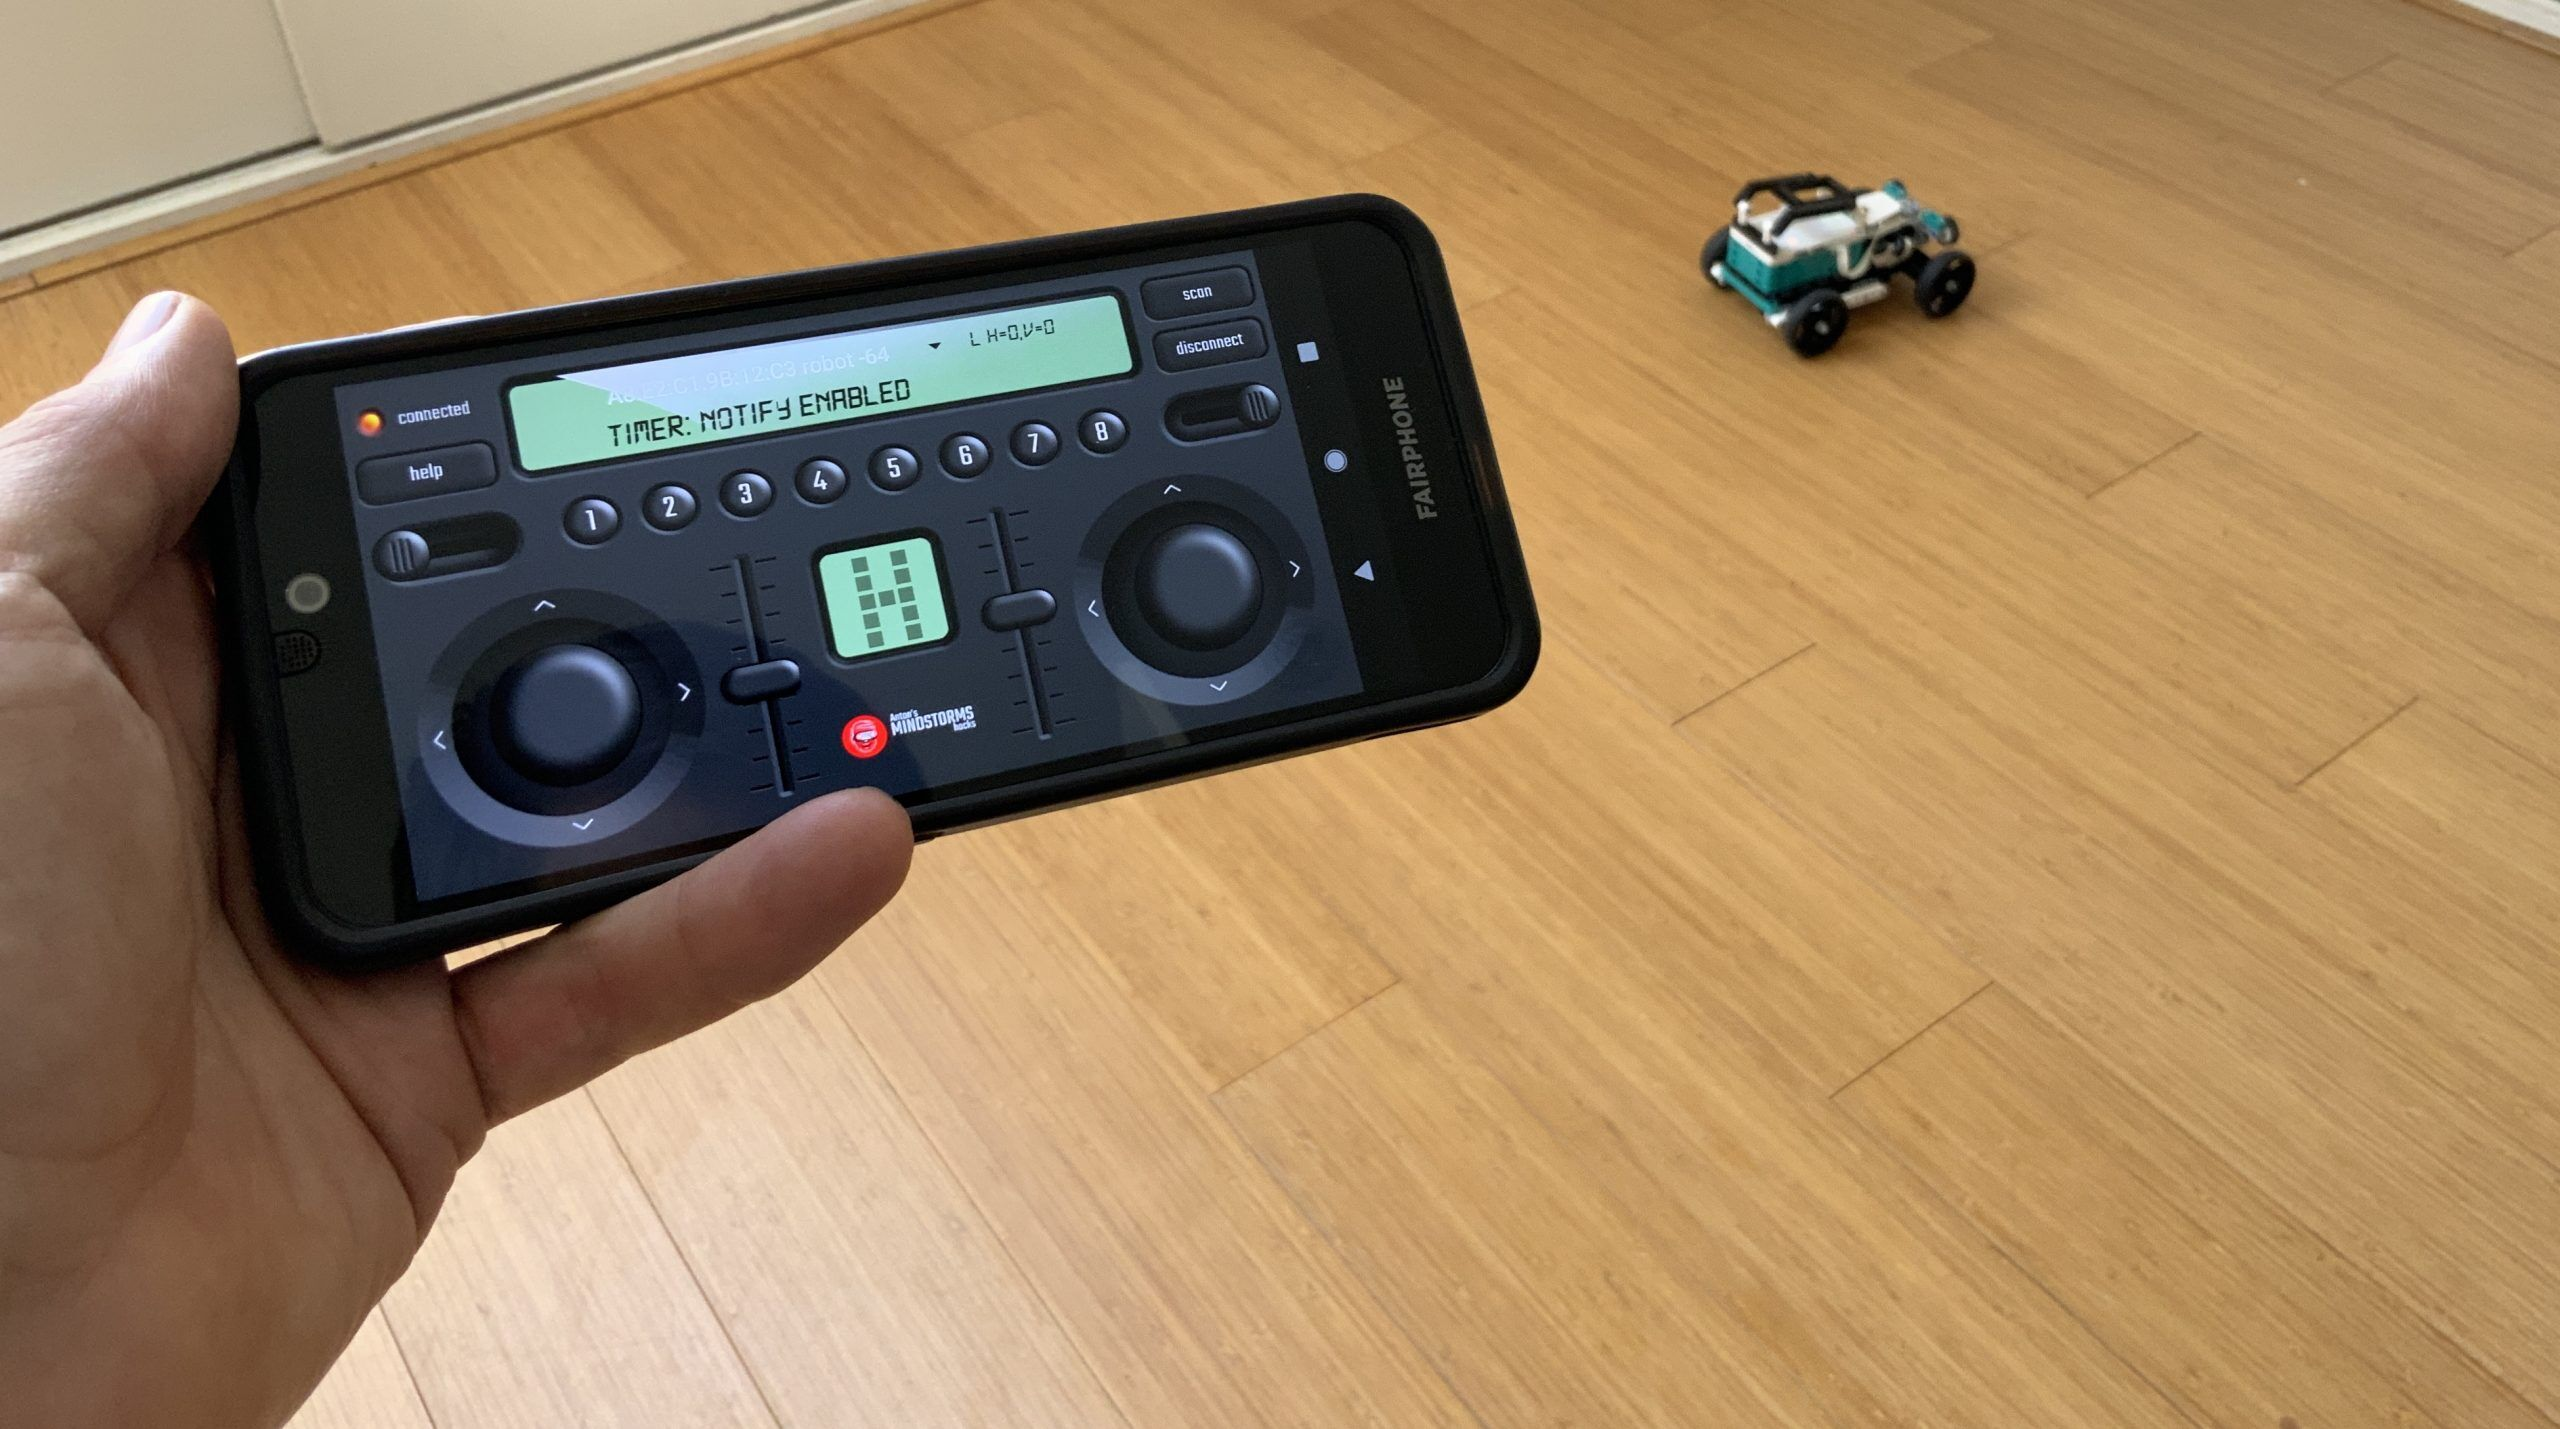 Python BLE Remote control for MINDSTORMS